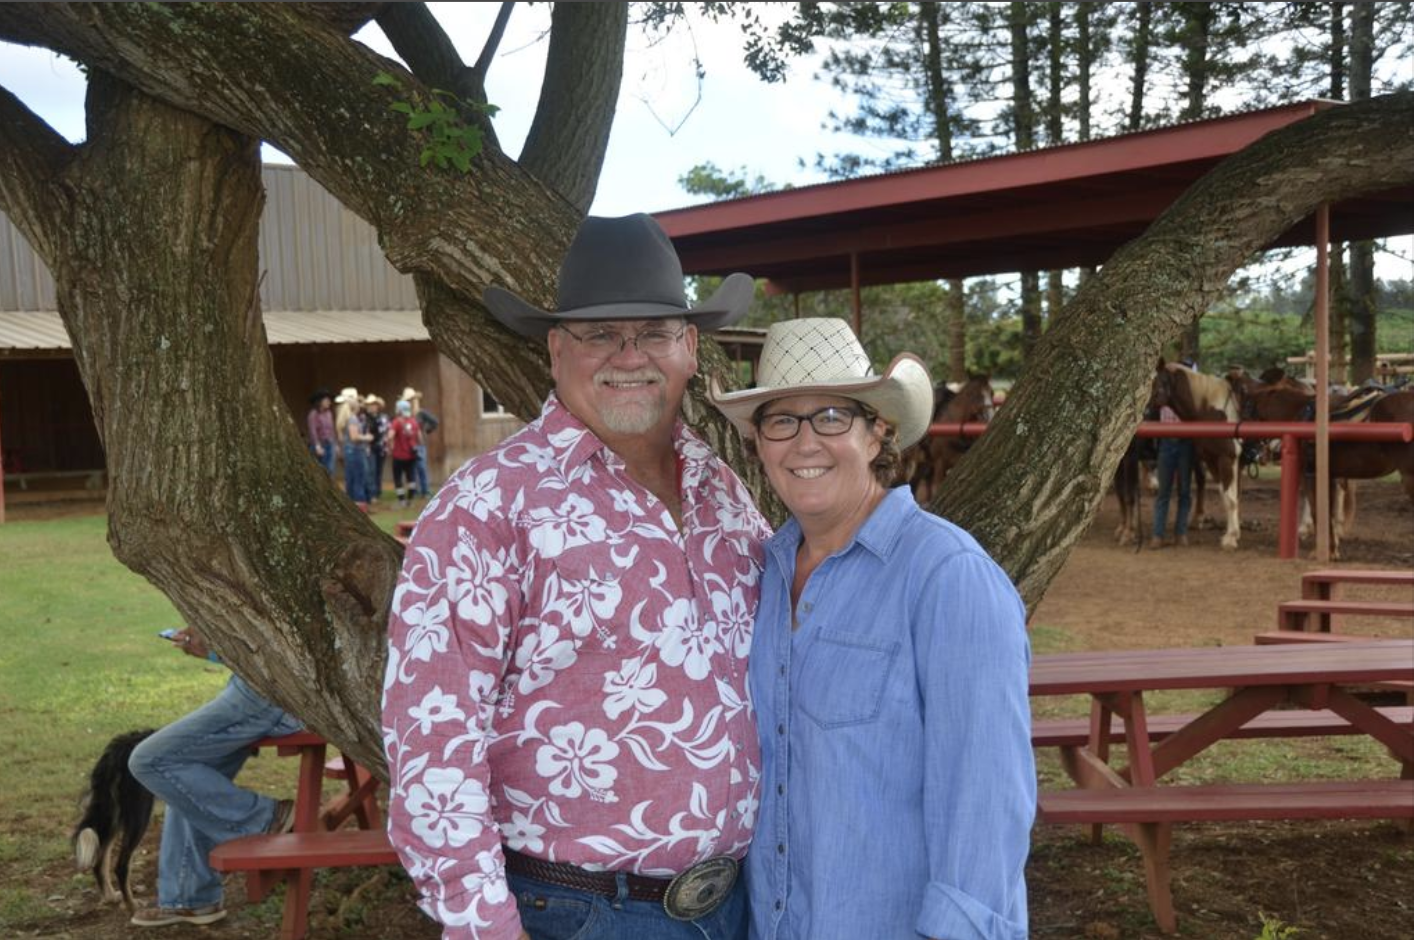 Greg Smith and his wife, Kyndra, have grown the cattle and horse ranch into an agritourism business that offers trail rides and UTV tours, and serves as an event space and horse boarding facility.   COURTESY OF GUNSTOCK RANCH